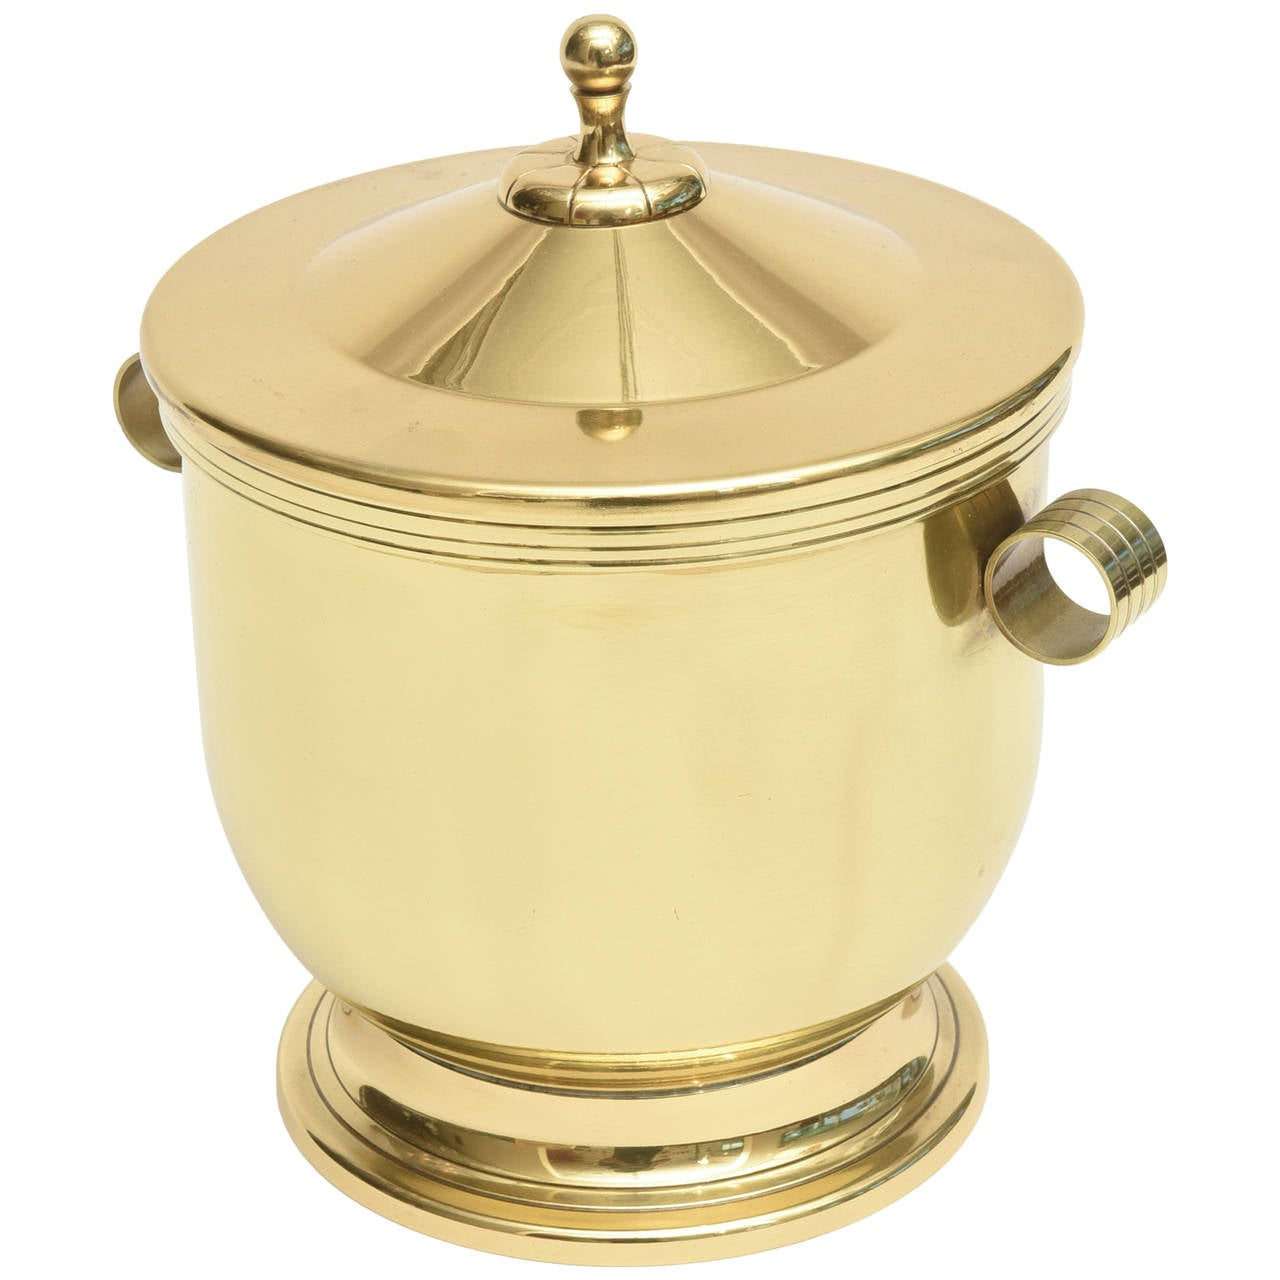 Classic Tommi Parzinger Polished Brass Ice Covered Ice Bucket For Sale